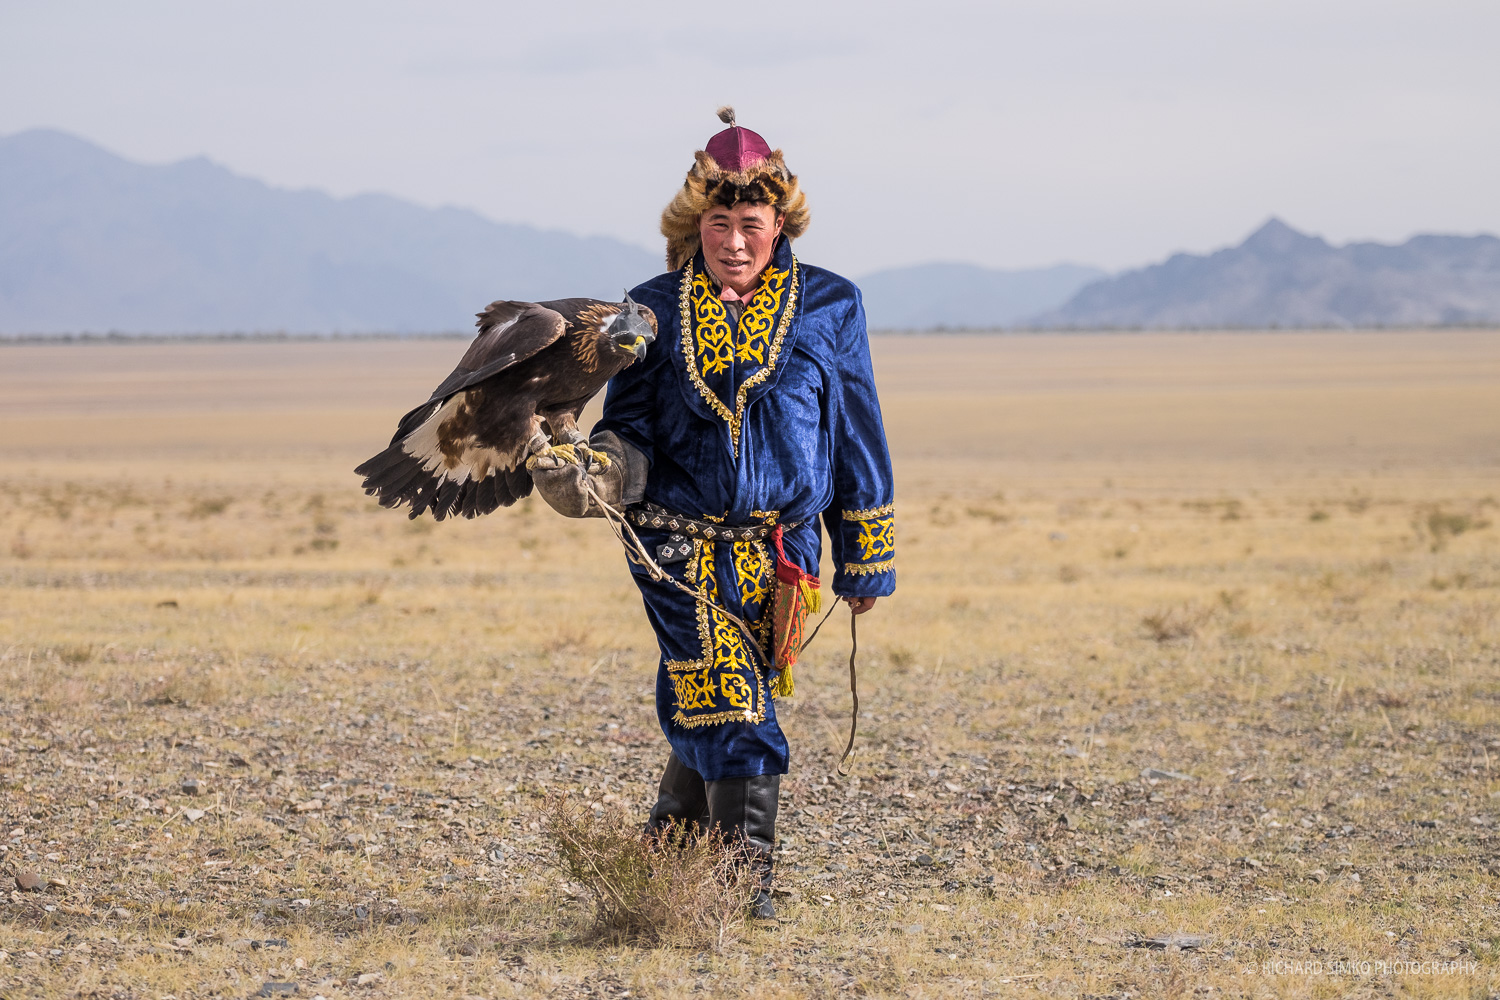 Eagle hunter in one of the more colourful outfits